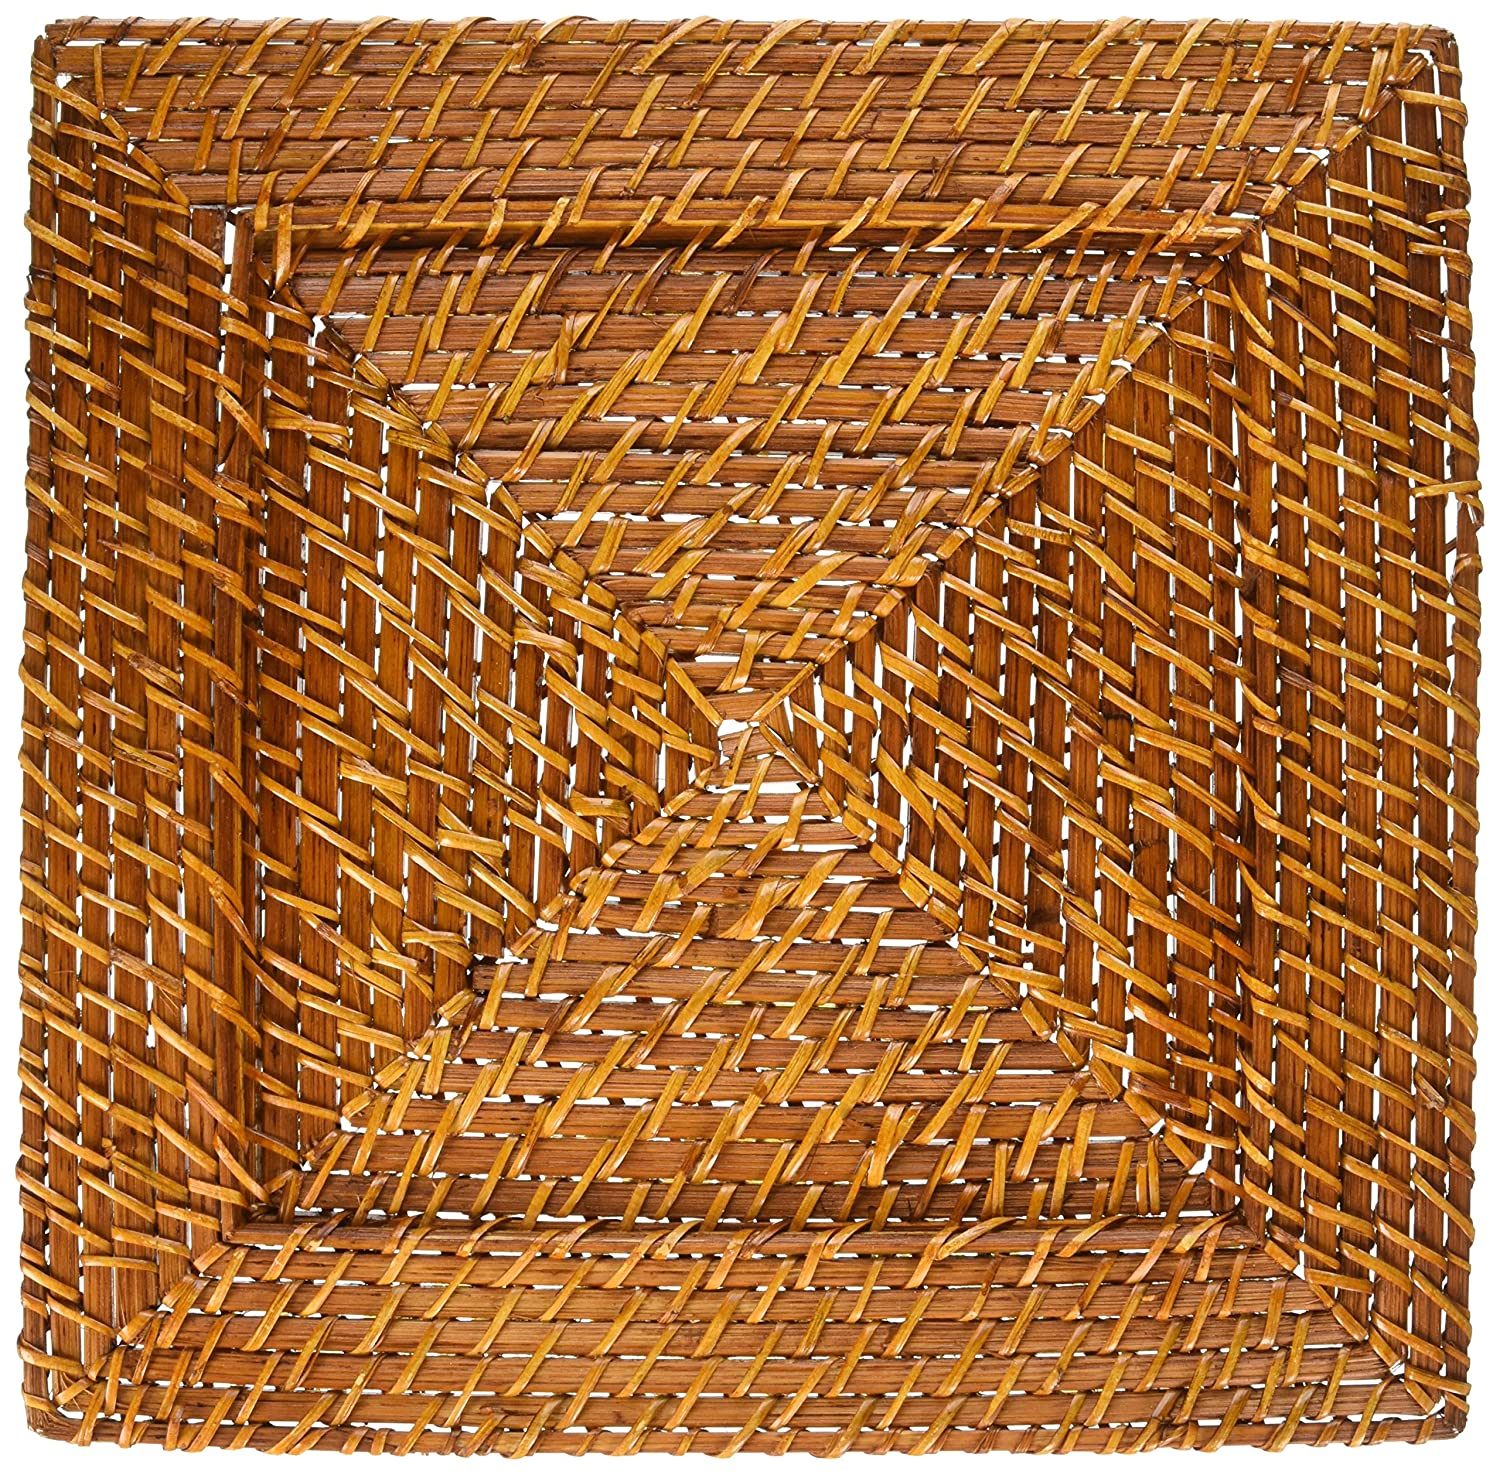 ChargeIt by Jay Square Harvest Rattan Charger, Brown Jay Imports 166415